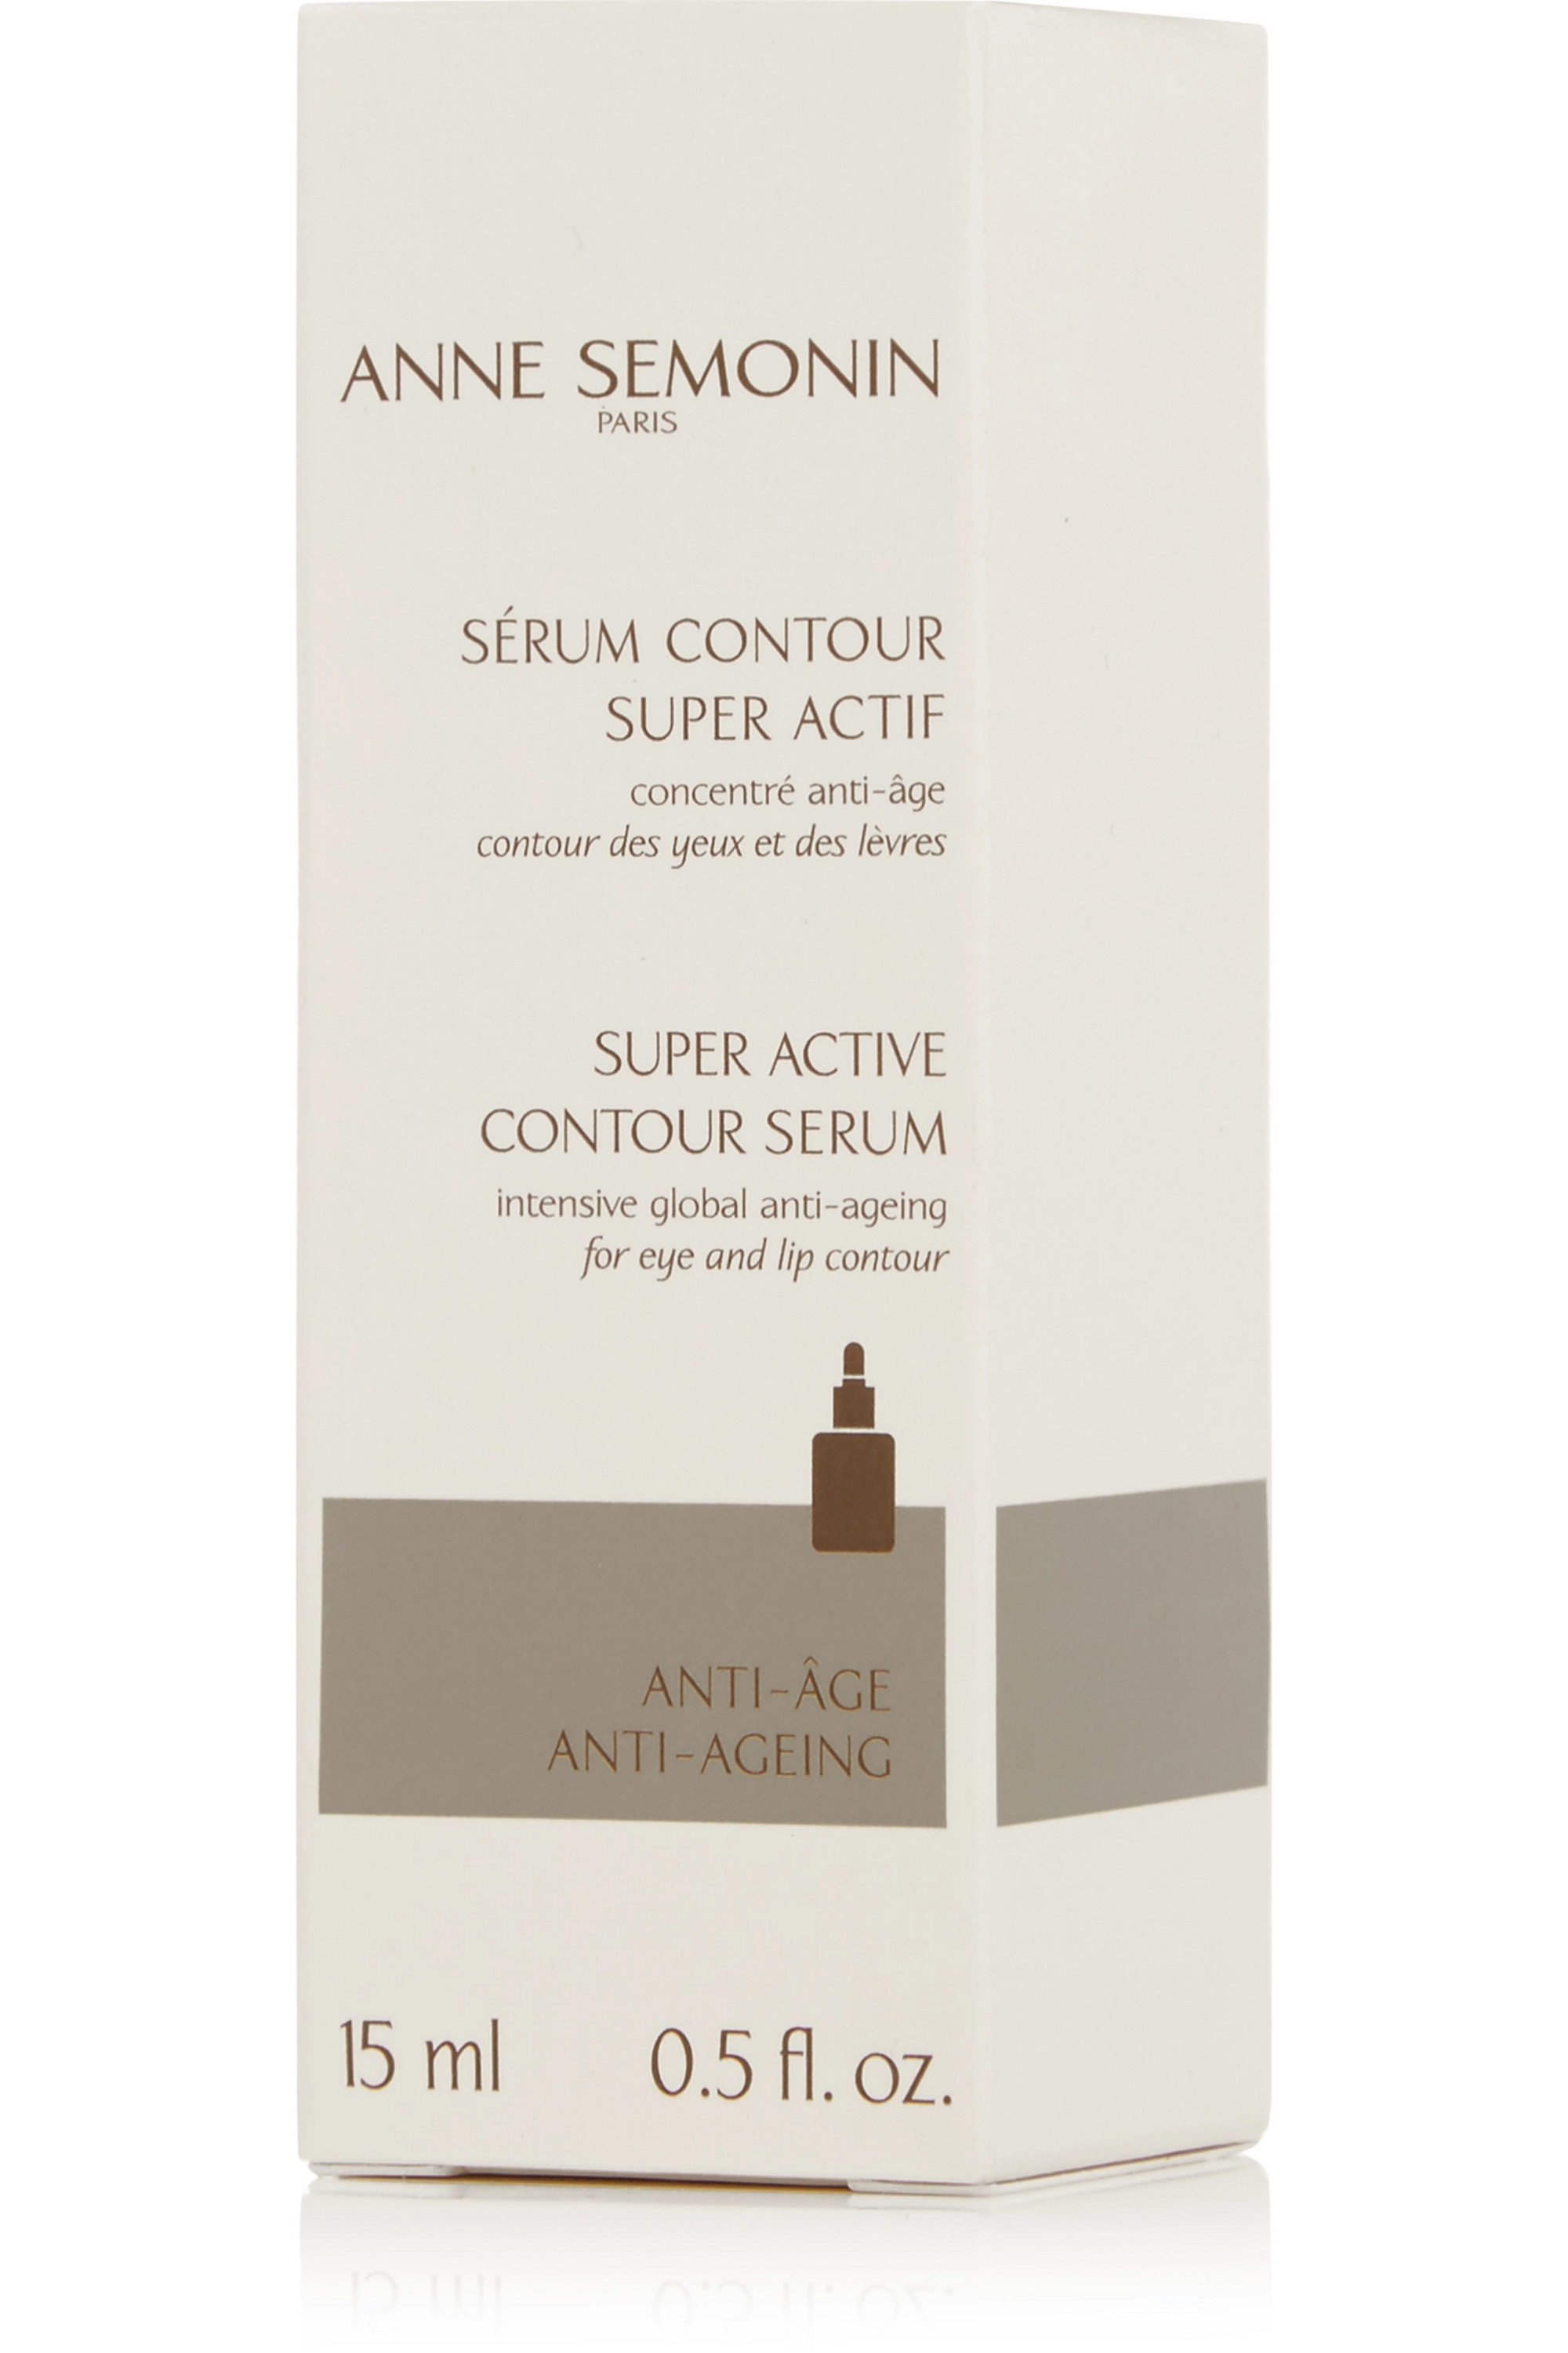 ANNE SEMONIN Super Active Contour Serum, 15ml